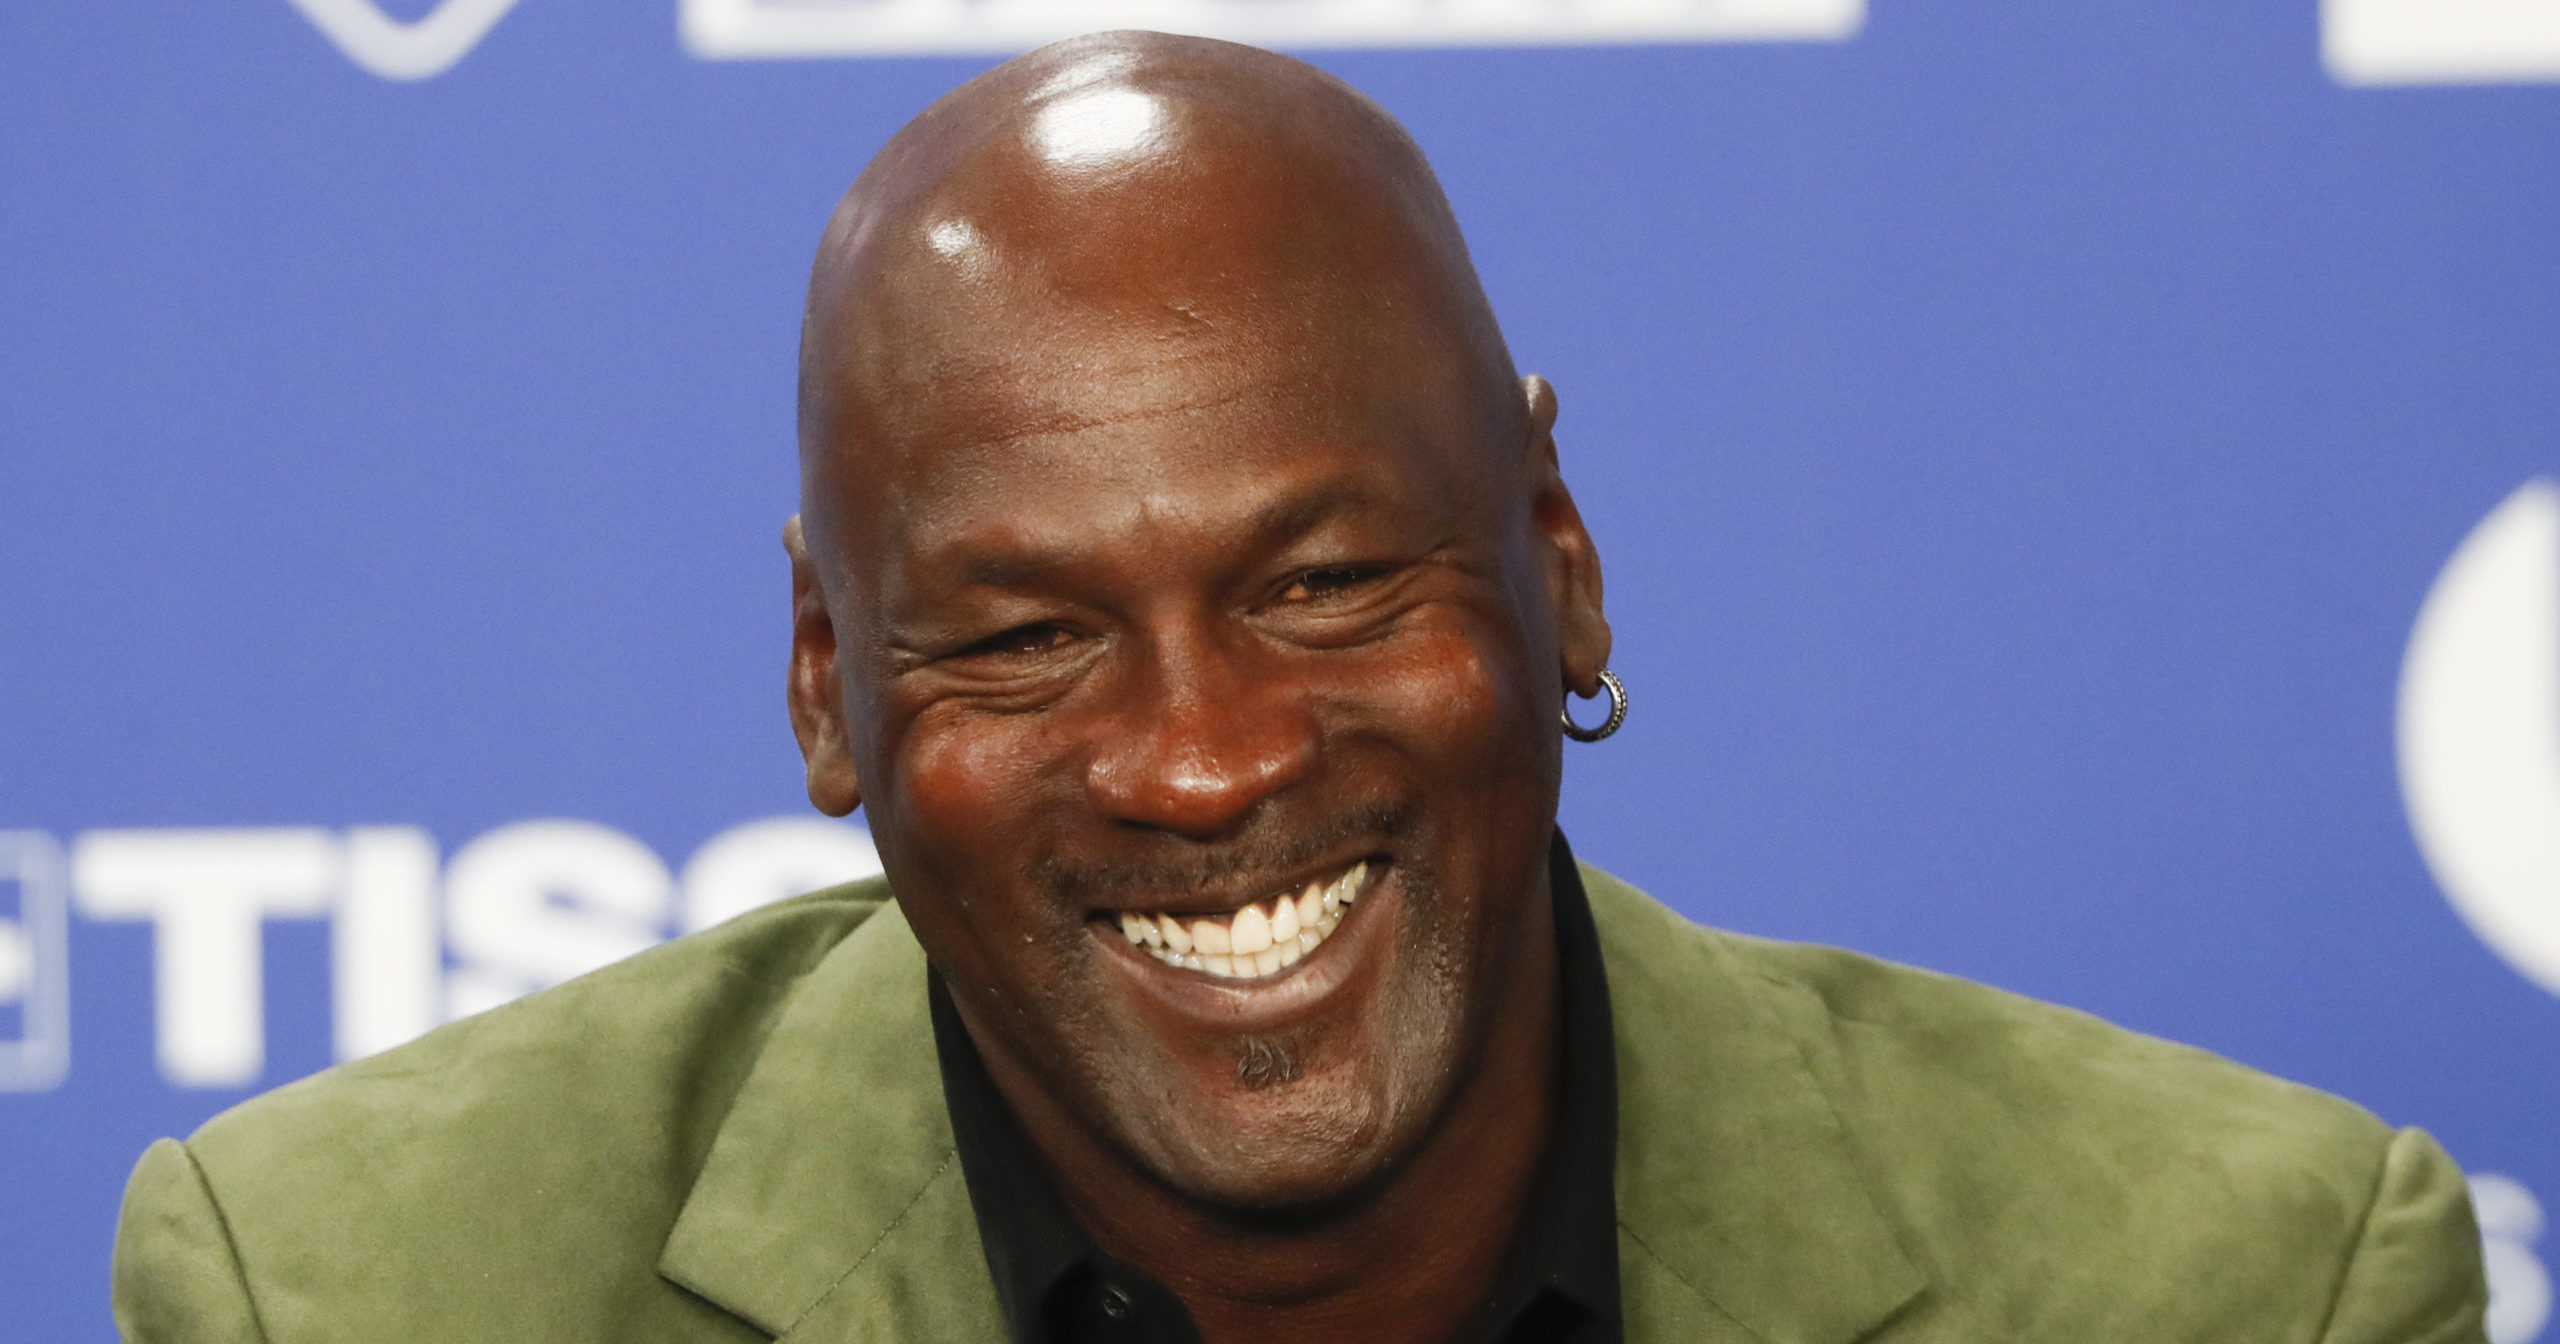 Basketball legend Michael Jordan speaks during a news conference ahead of an NBA basketball game between the Charlotte Hornets and Milwaukee Bucks in Paris, in this Jan. 24, 2020, file photo. Jordan is donating $10 million to launch two medical clinics in underserved communities near his hometown in North Carolina, a regional health care system announced Monday.